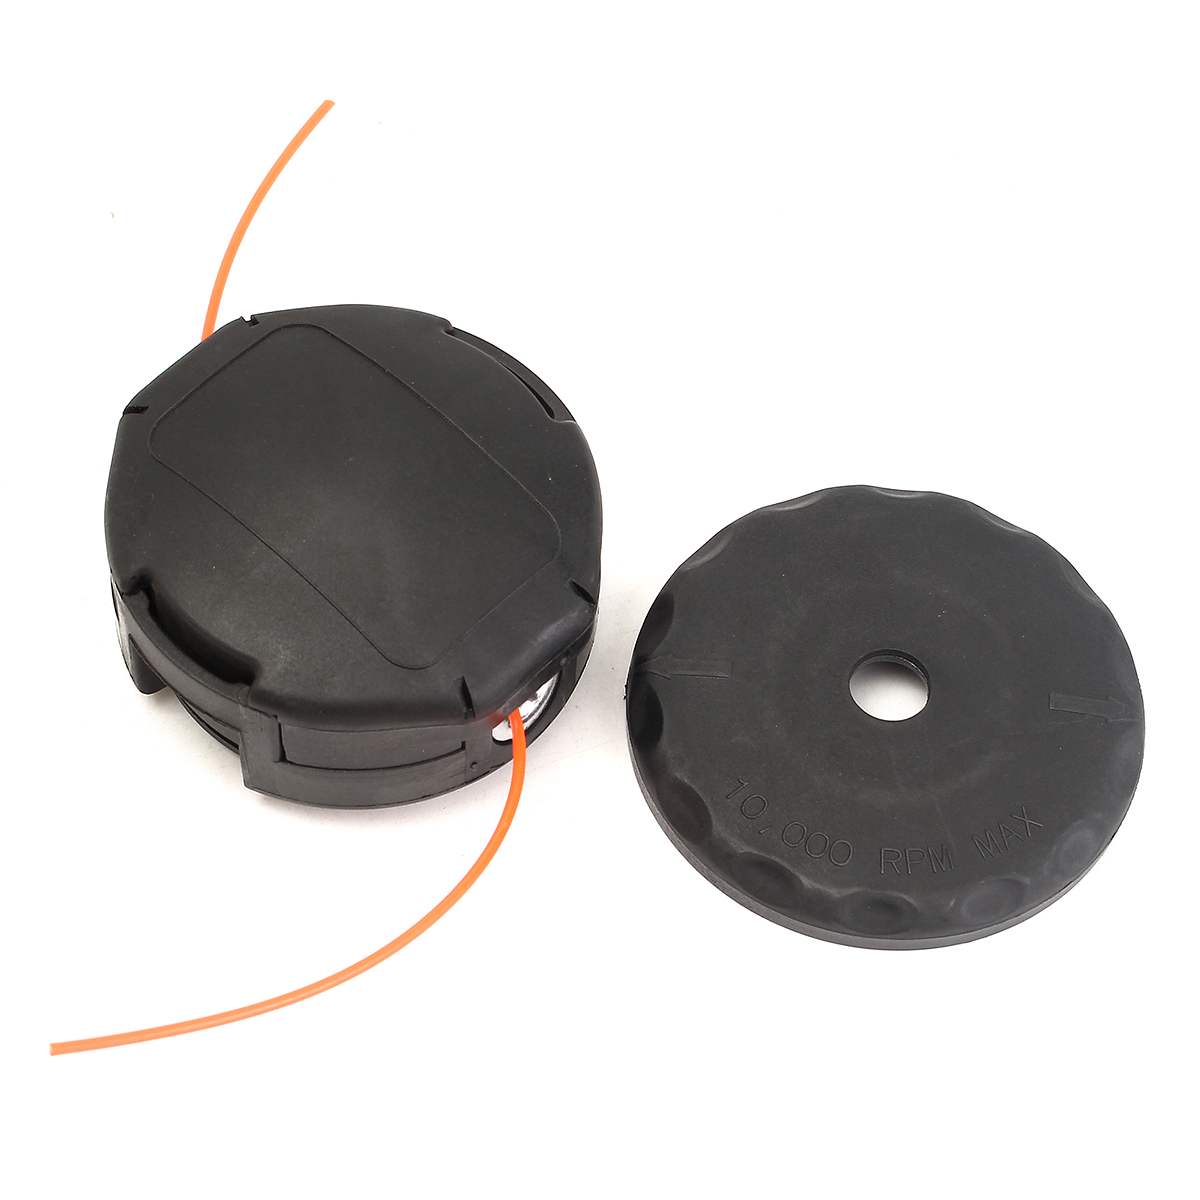 hight resolution of bump feed string trimmer head for echo speed feed 400 srm 225 srm